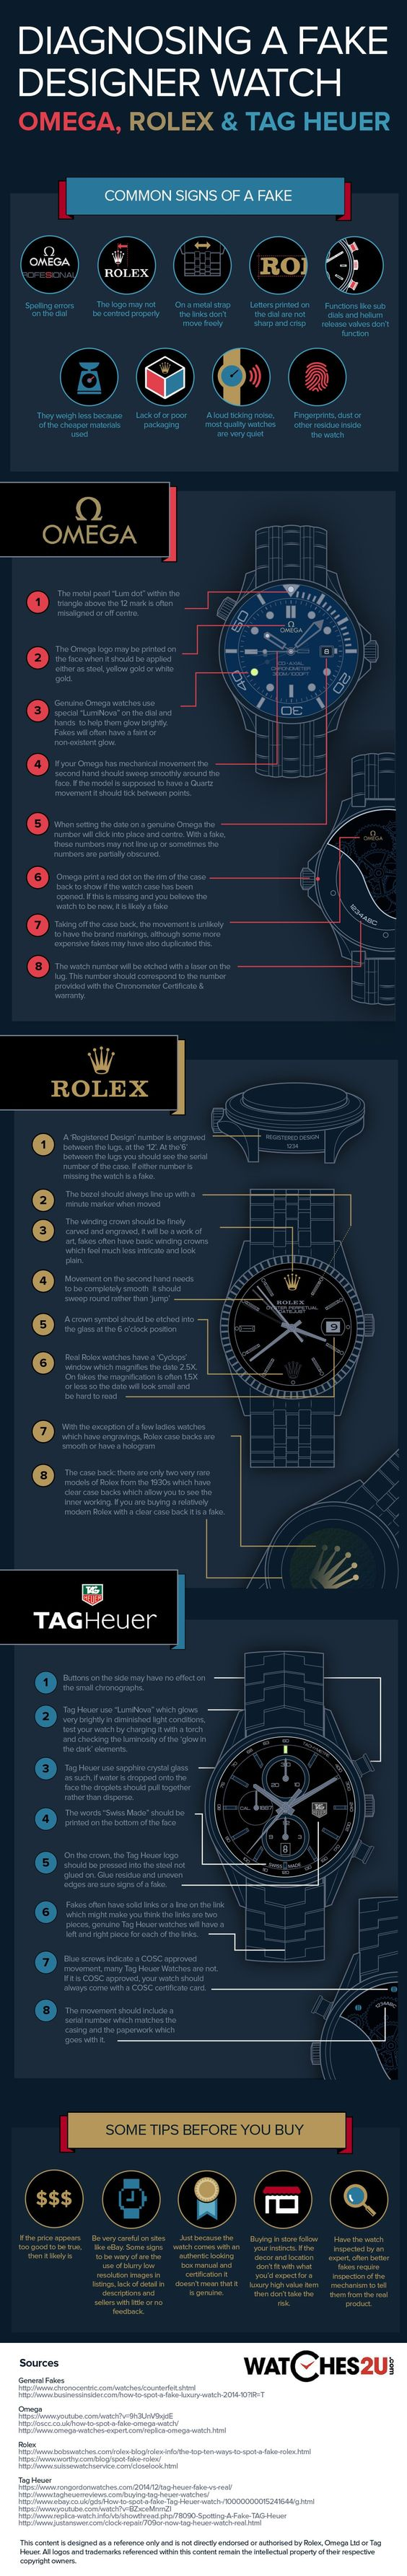 Fake watch guide